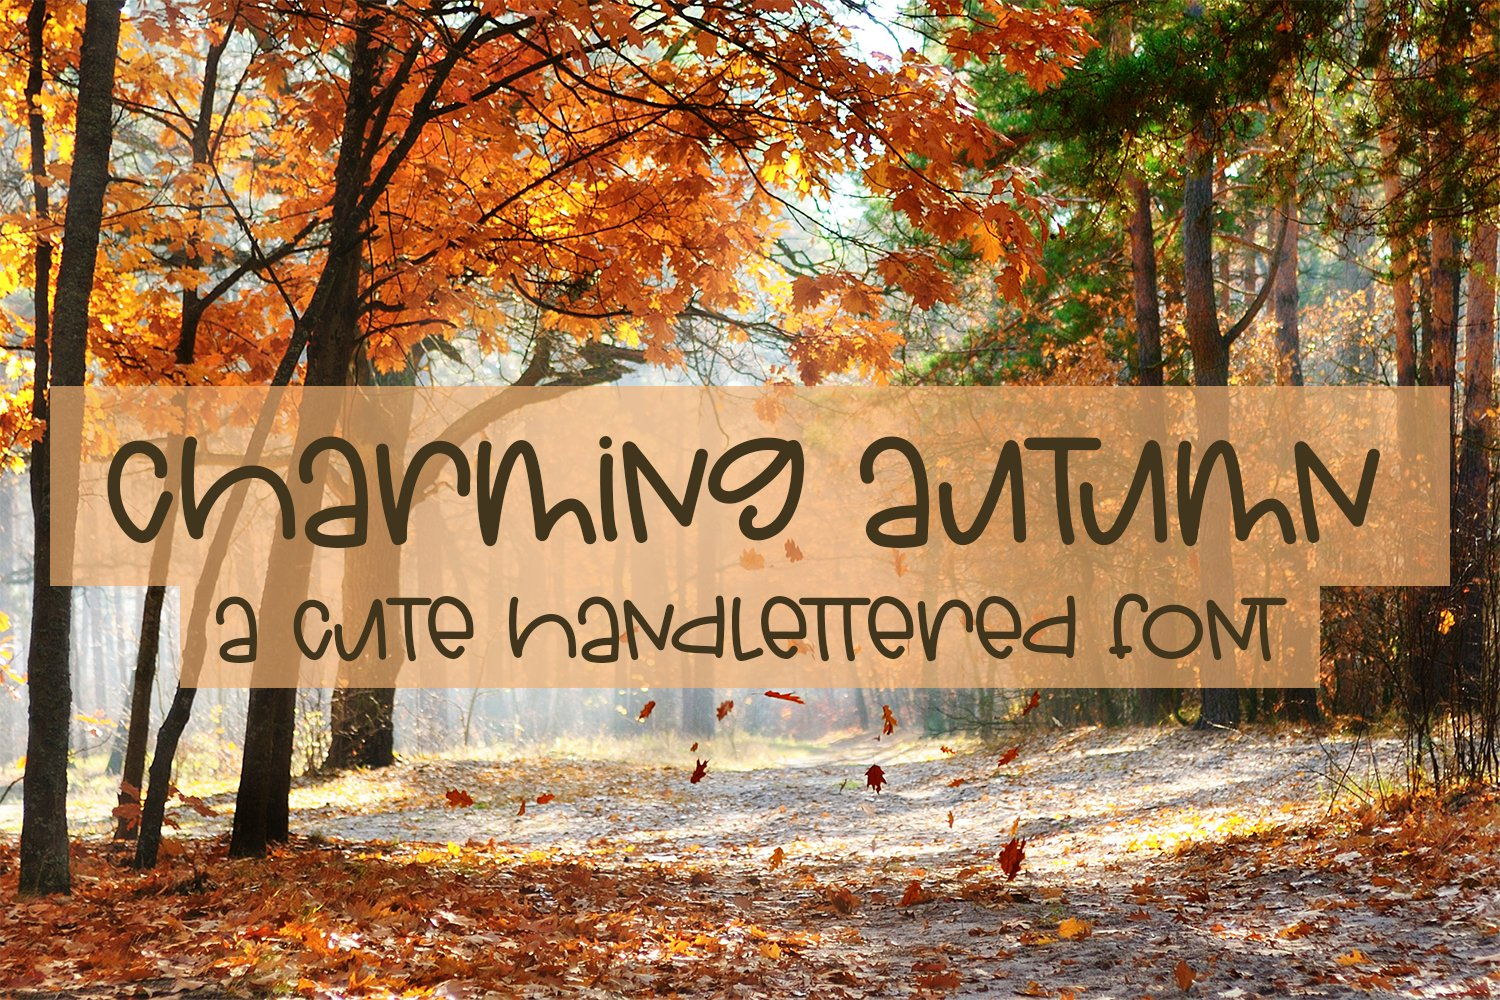 Charming Autumn - A Fun Hand-Lettered Font example image 1